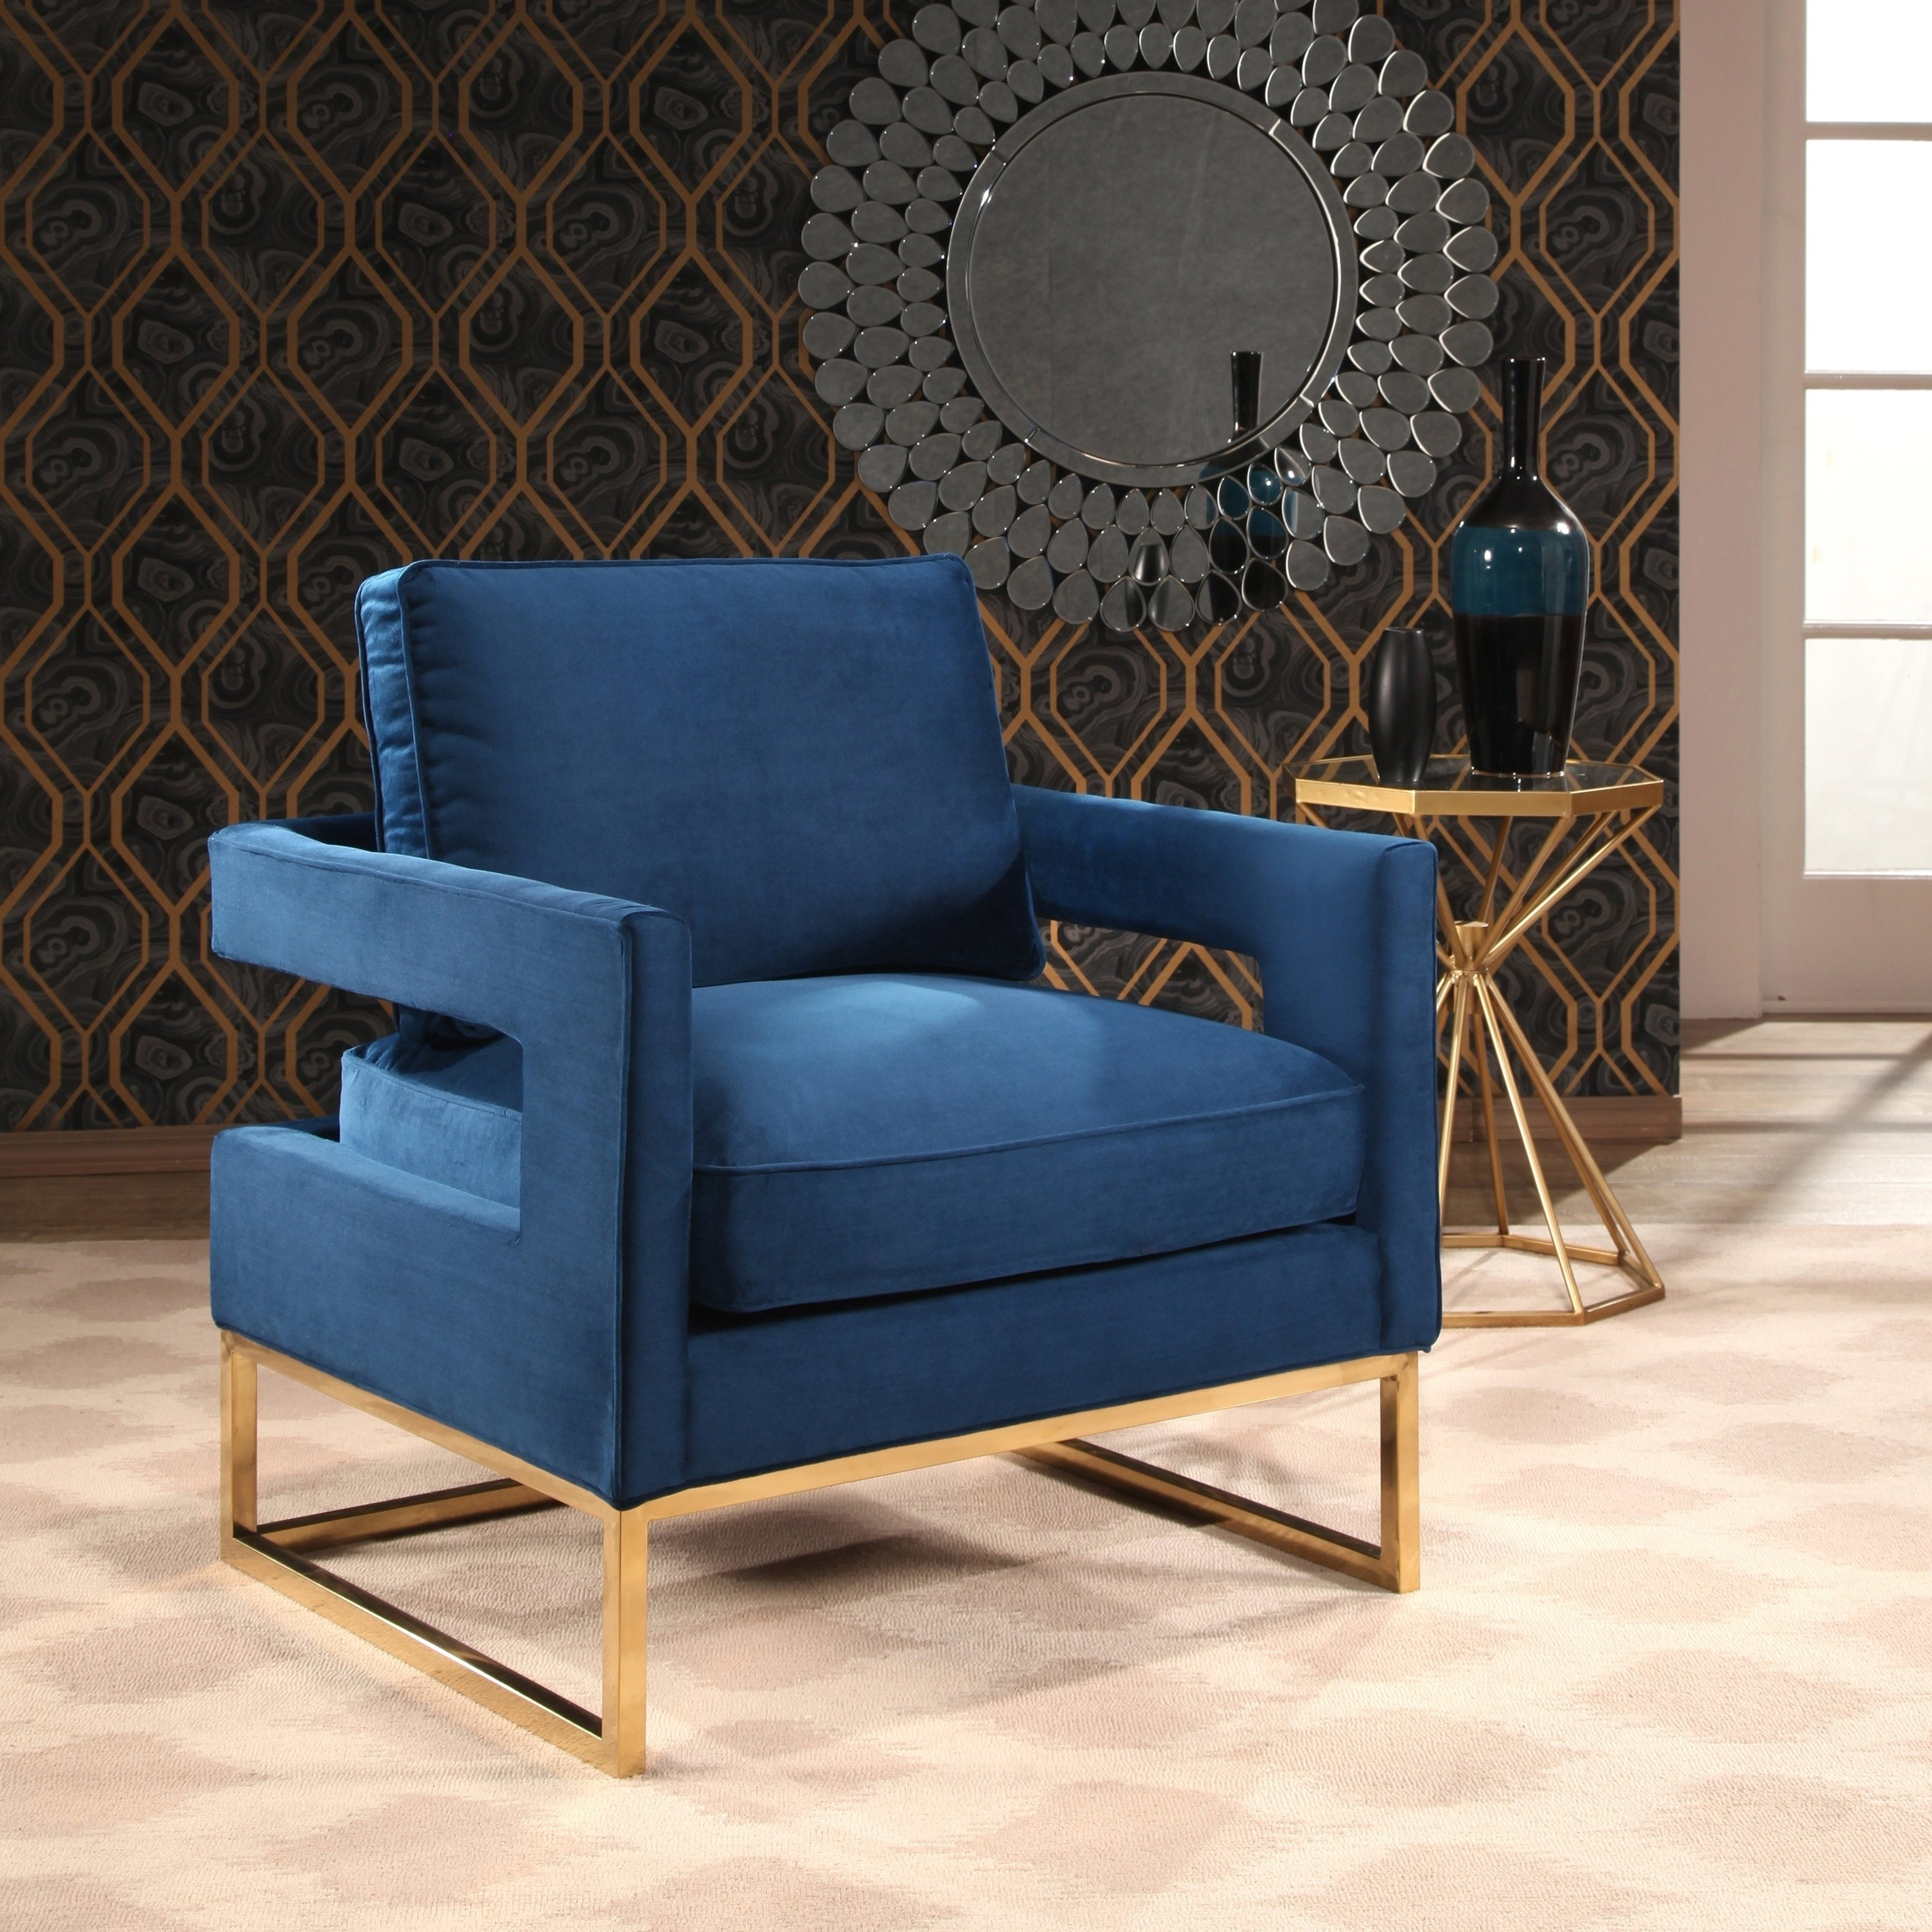 Our Best Living Throughout Current Nautical Blue Side Chairs (View 8 of 20)